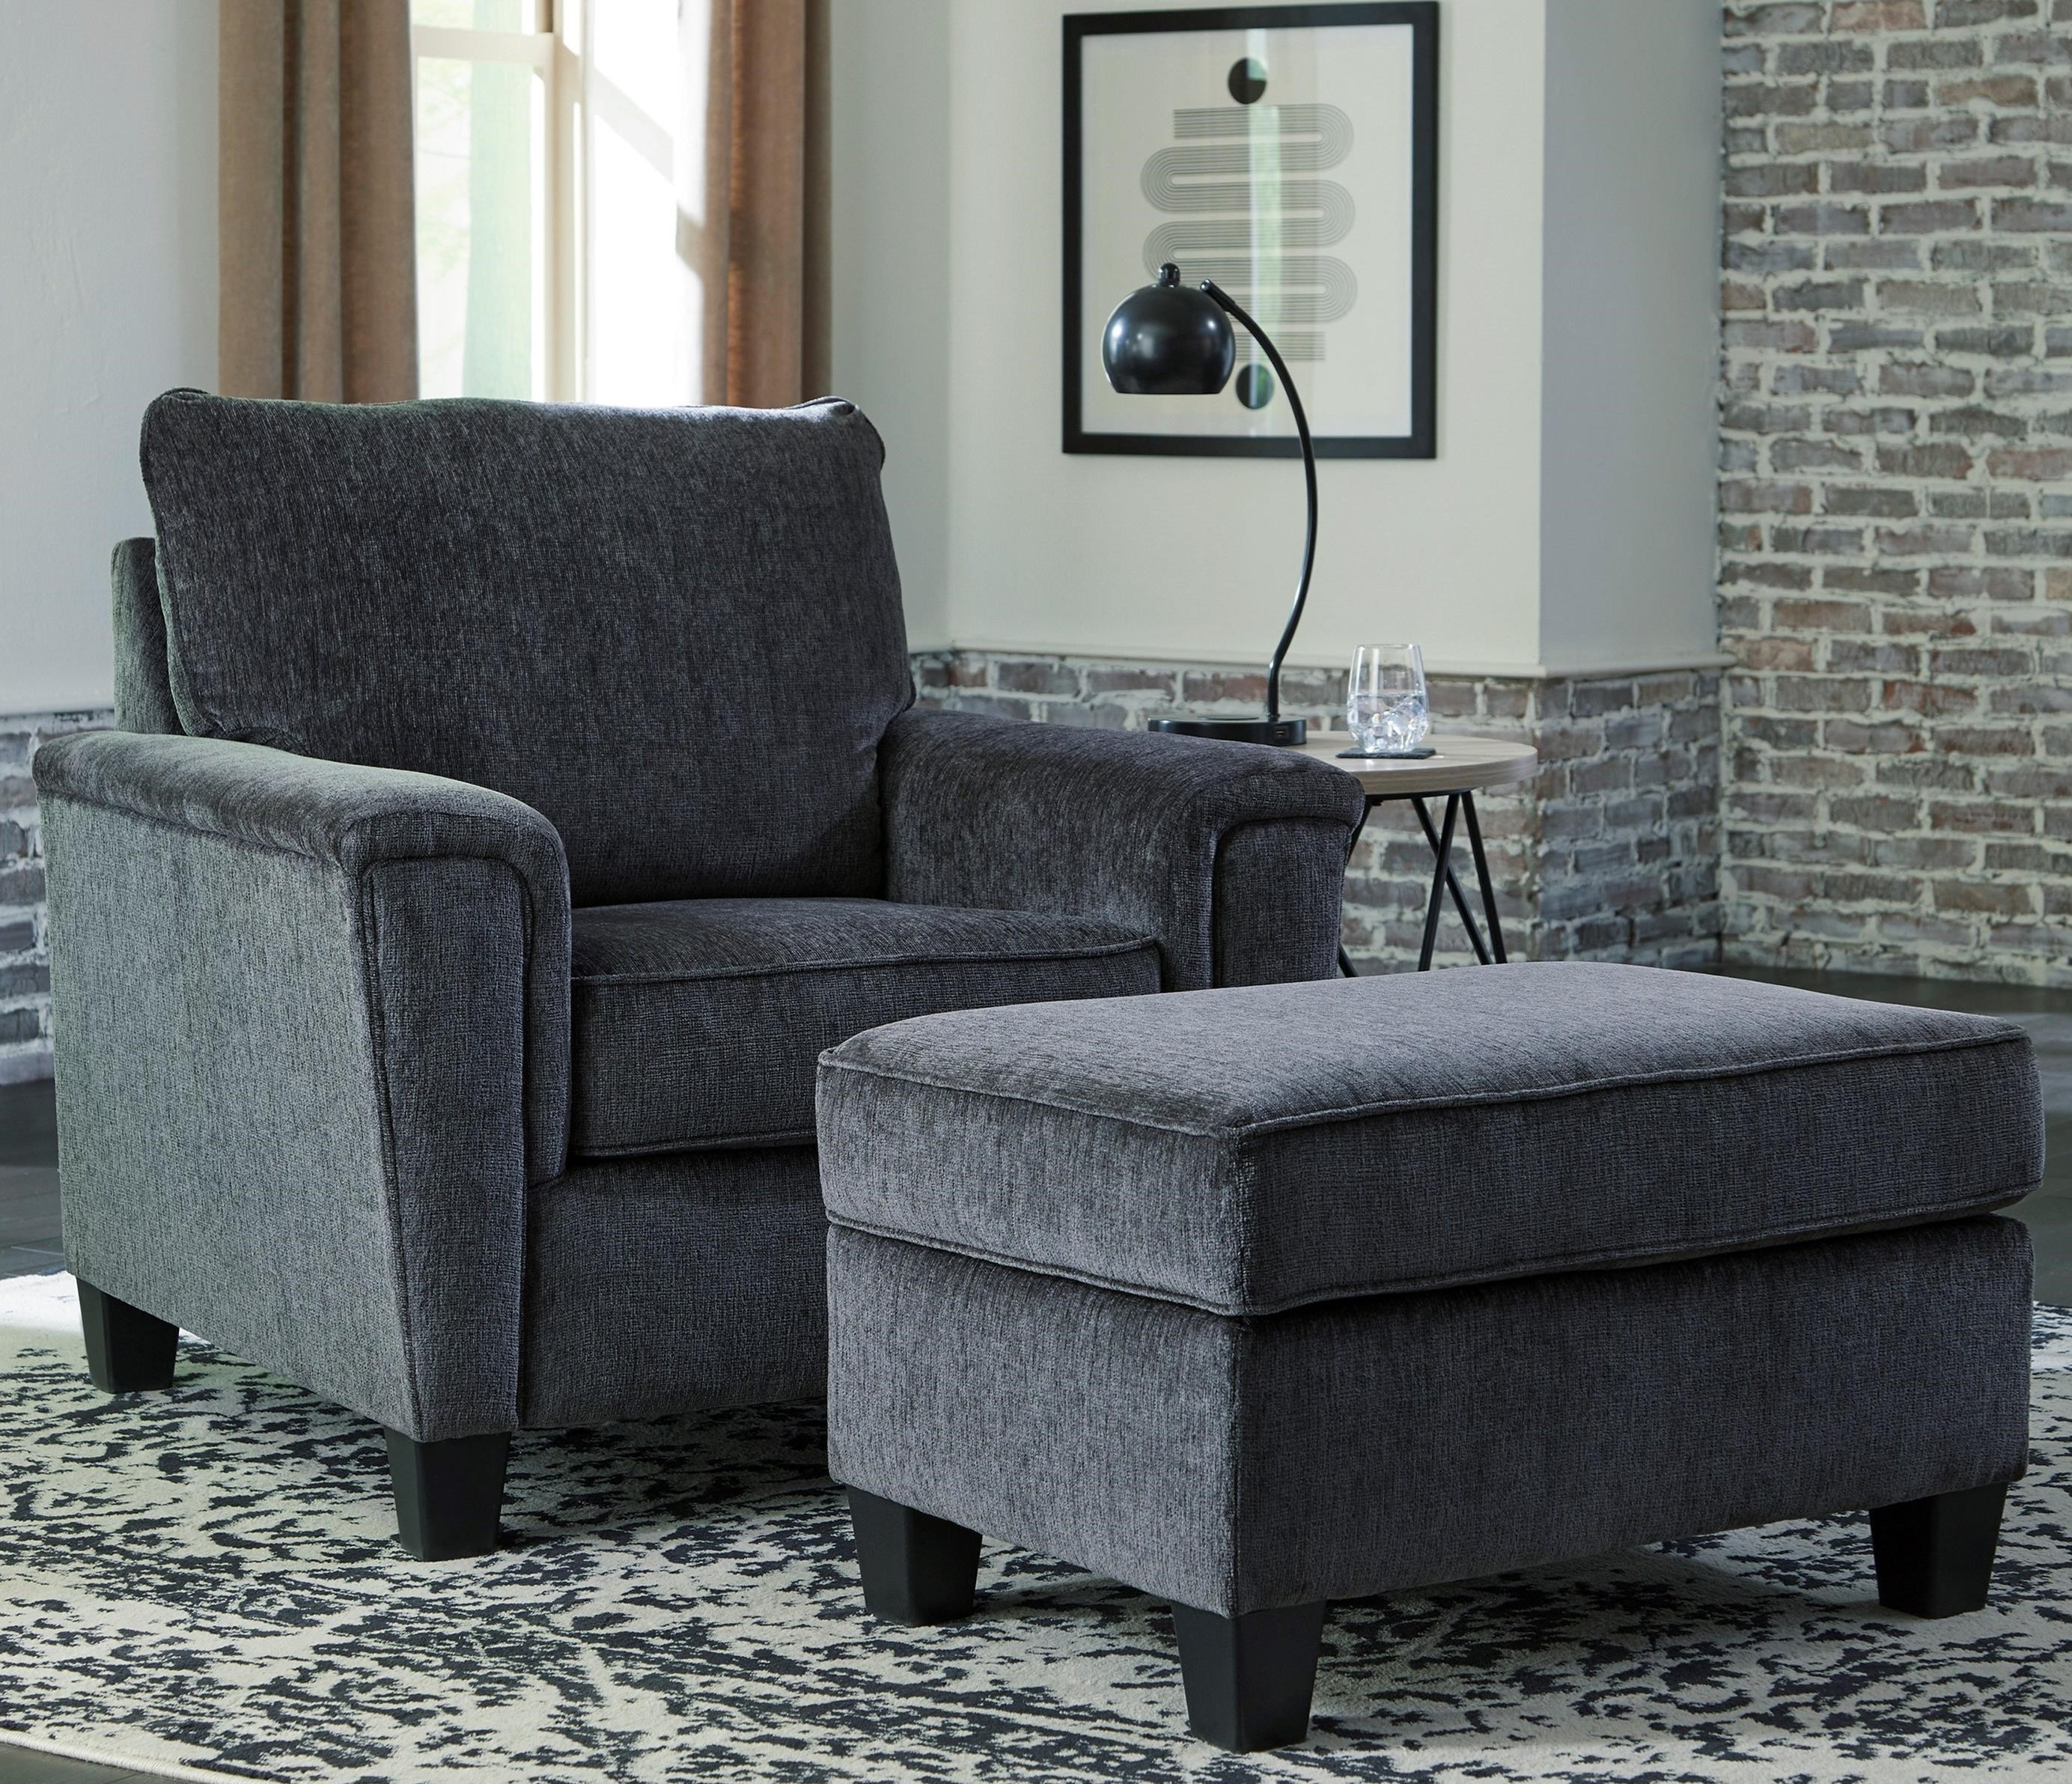 Abinger Chair & Ottoman by Signature Design by Ashley at Northeast Factory Direct